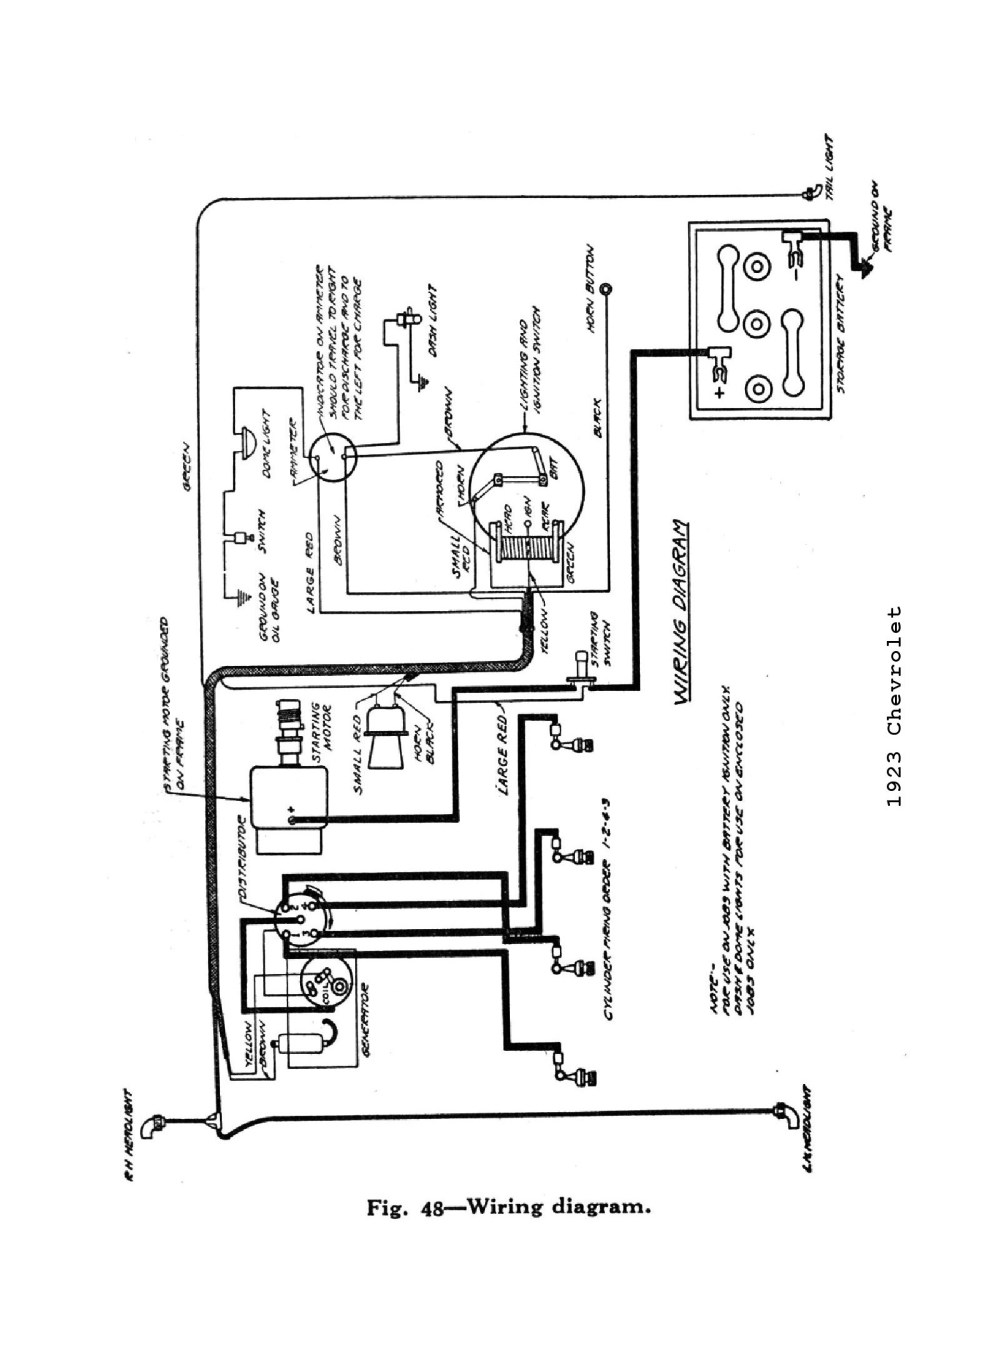 medium resolution of 1949 packard wiring diagram wiring diagram centre